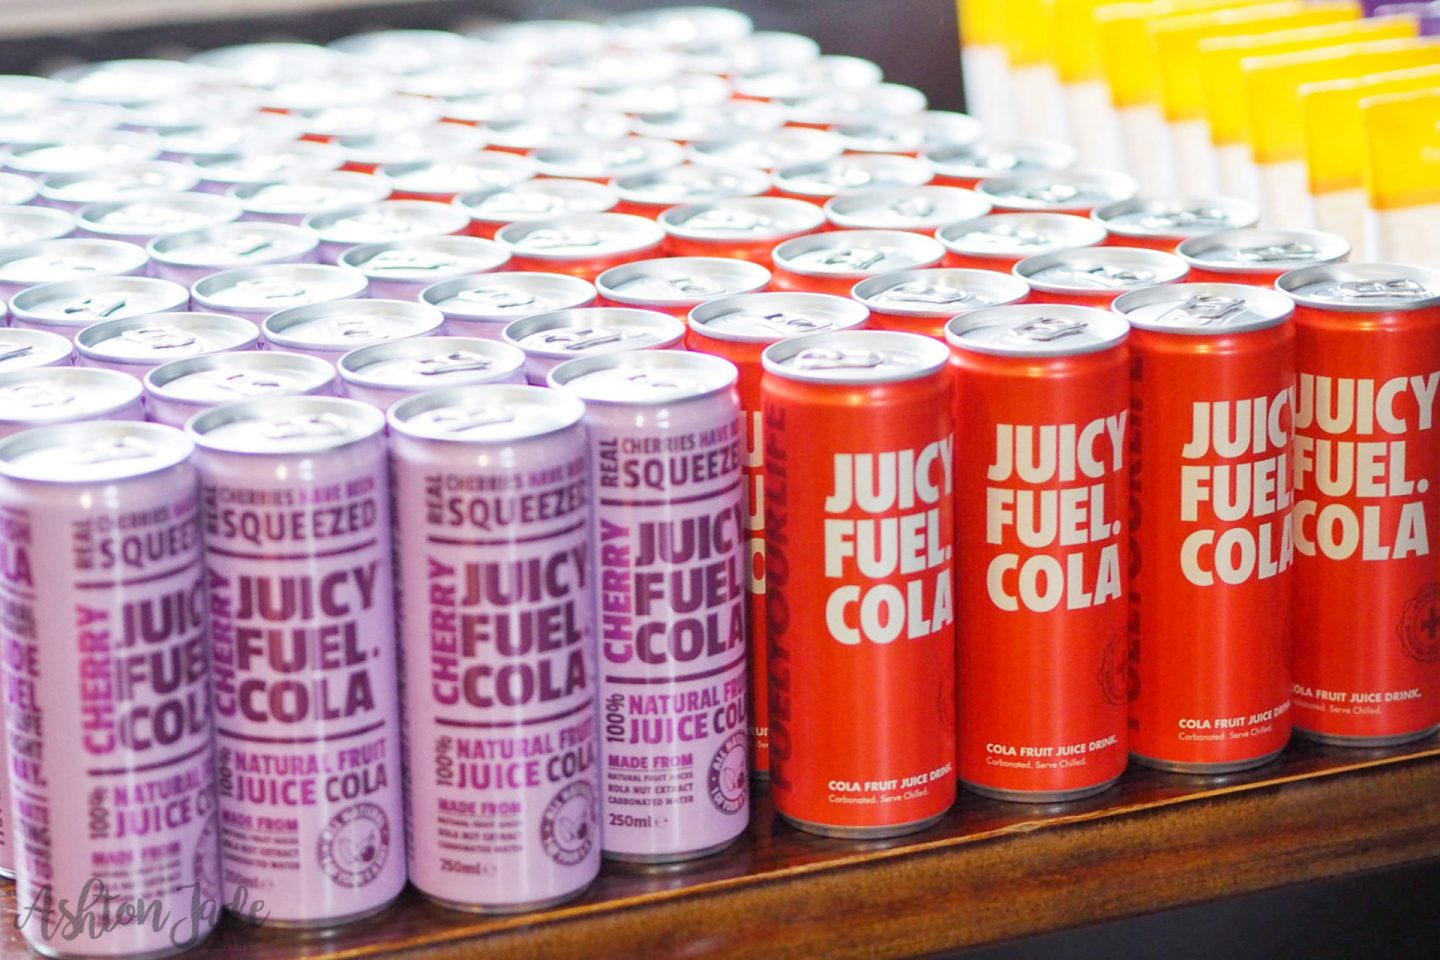 bloggerhalloweenparty-juicy-fuel-cola